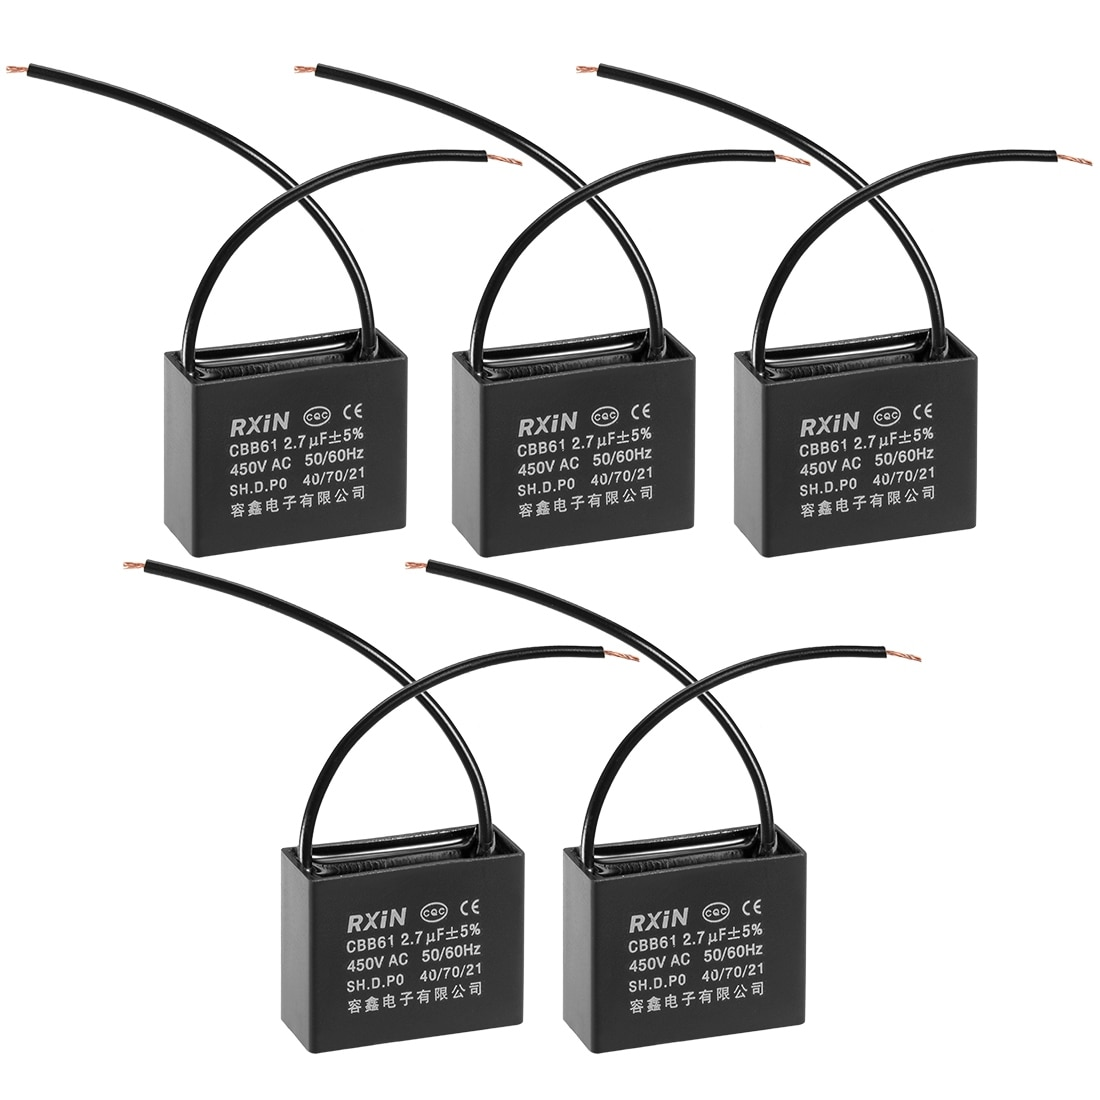 hight resolution of shop run capacitor 450v ac 2 7 uf metallized polypropylene film capacitors 5pcs 2 7 uf 5pcs on sale free shipping on orders over 45 overstock